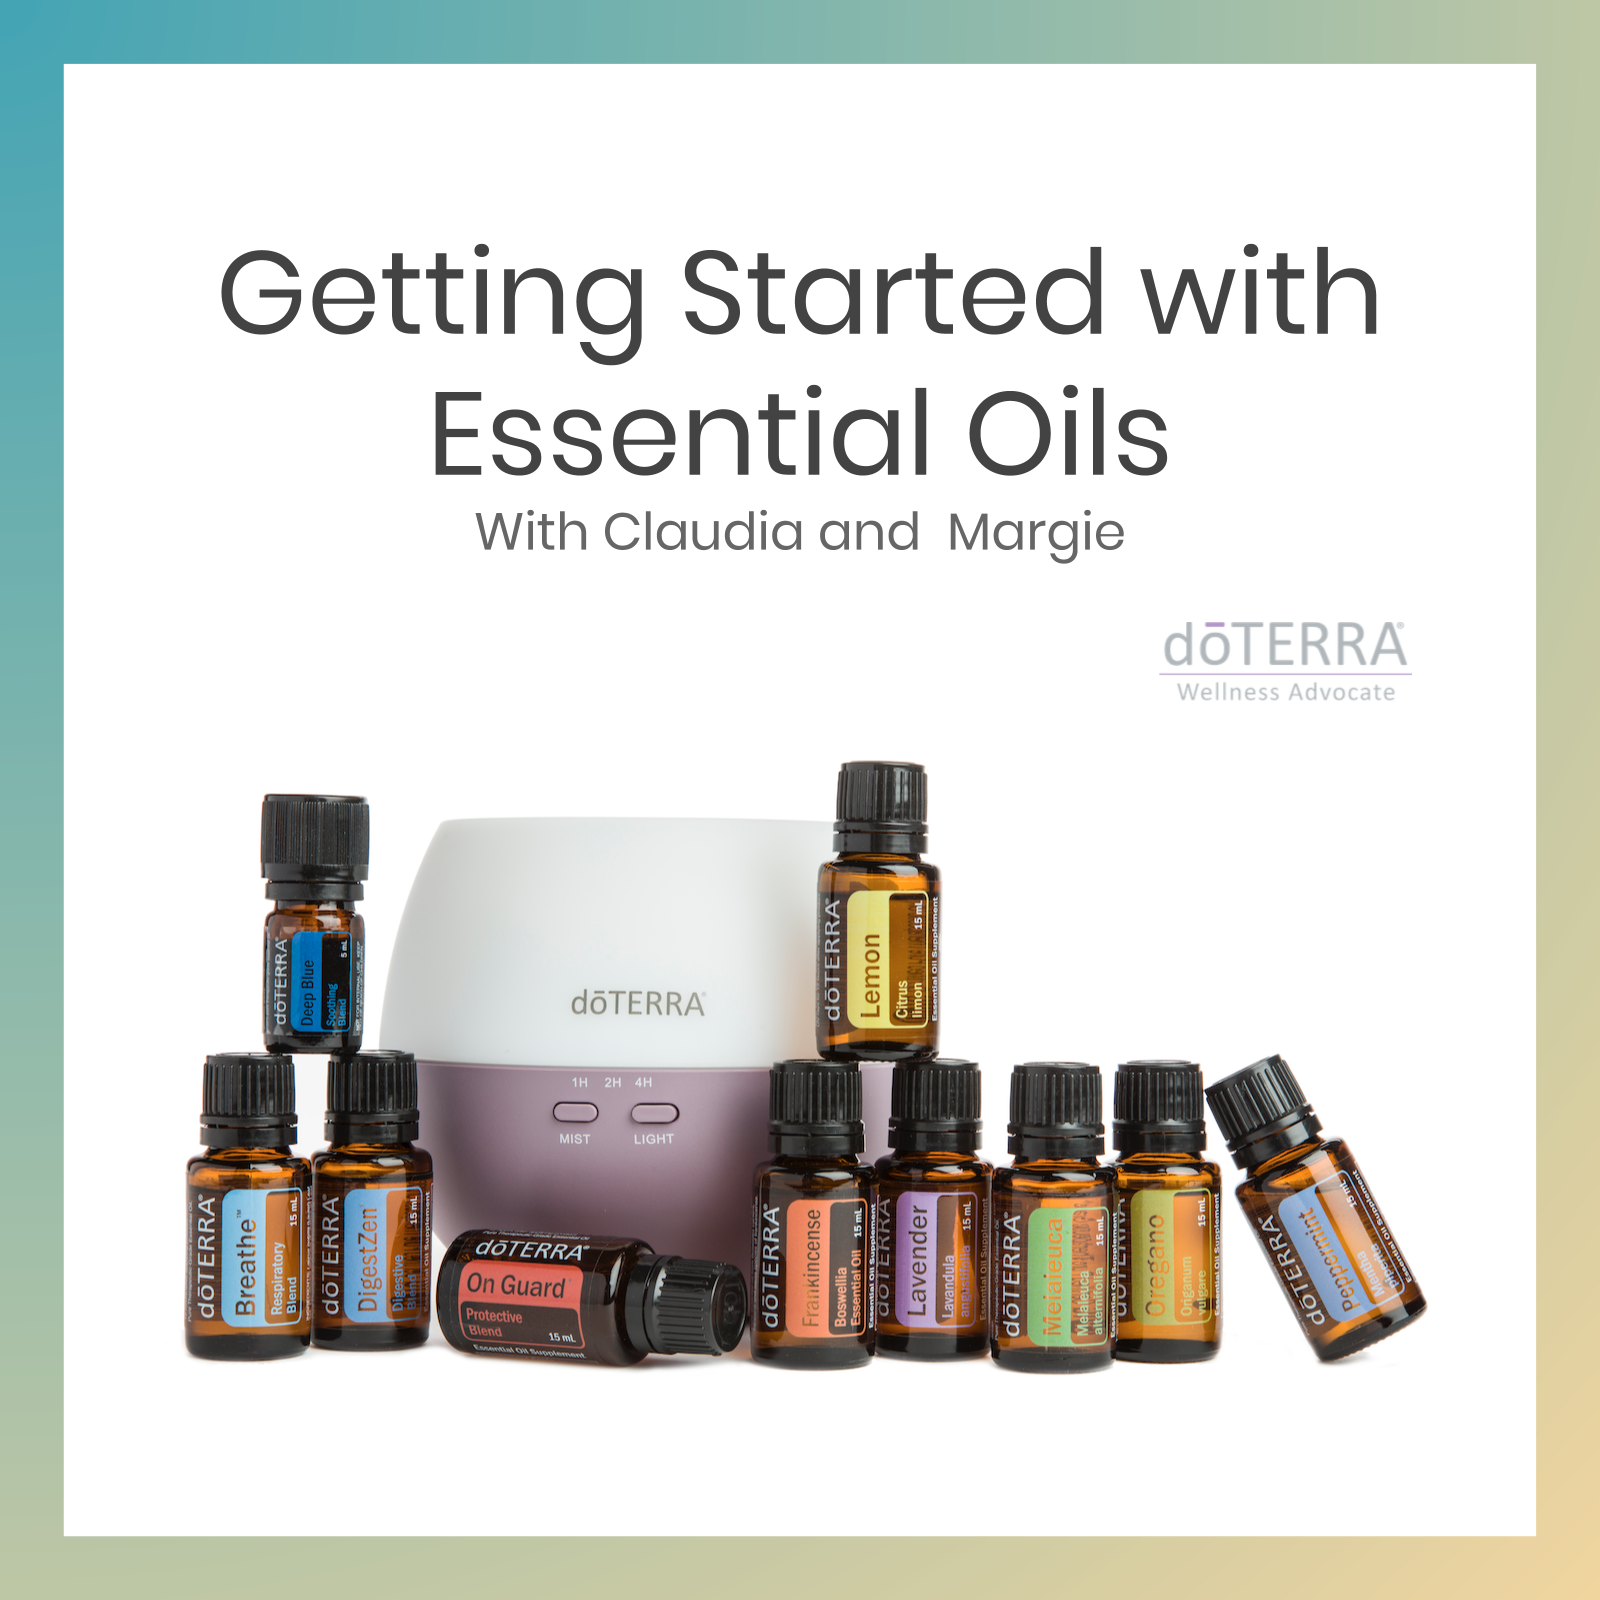 Getting started with Essential Oils